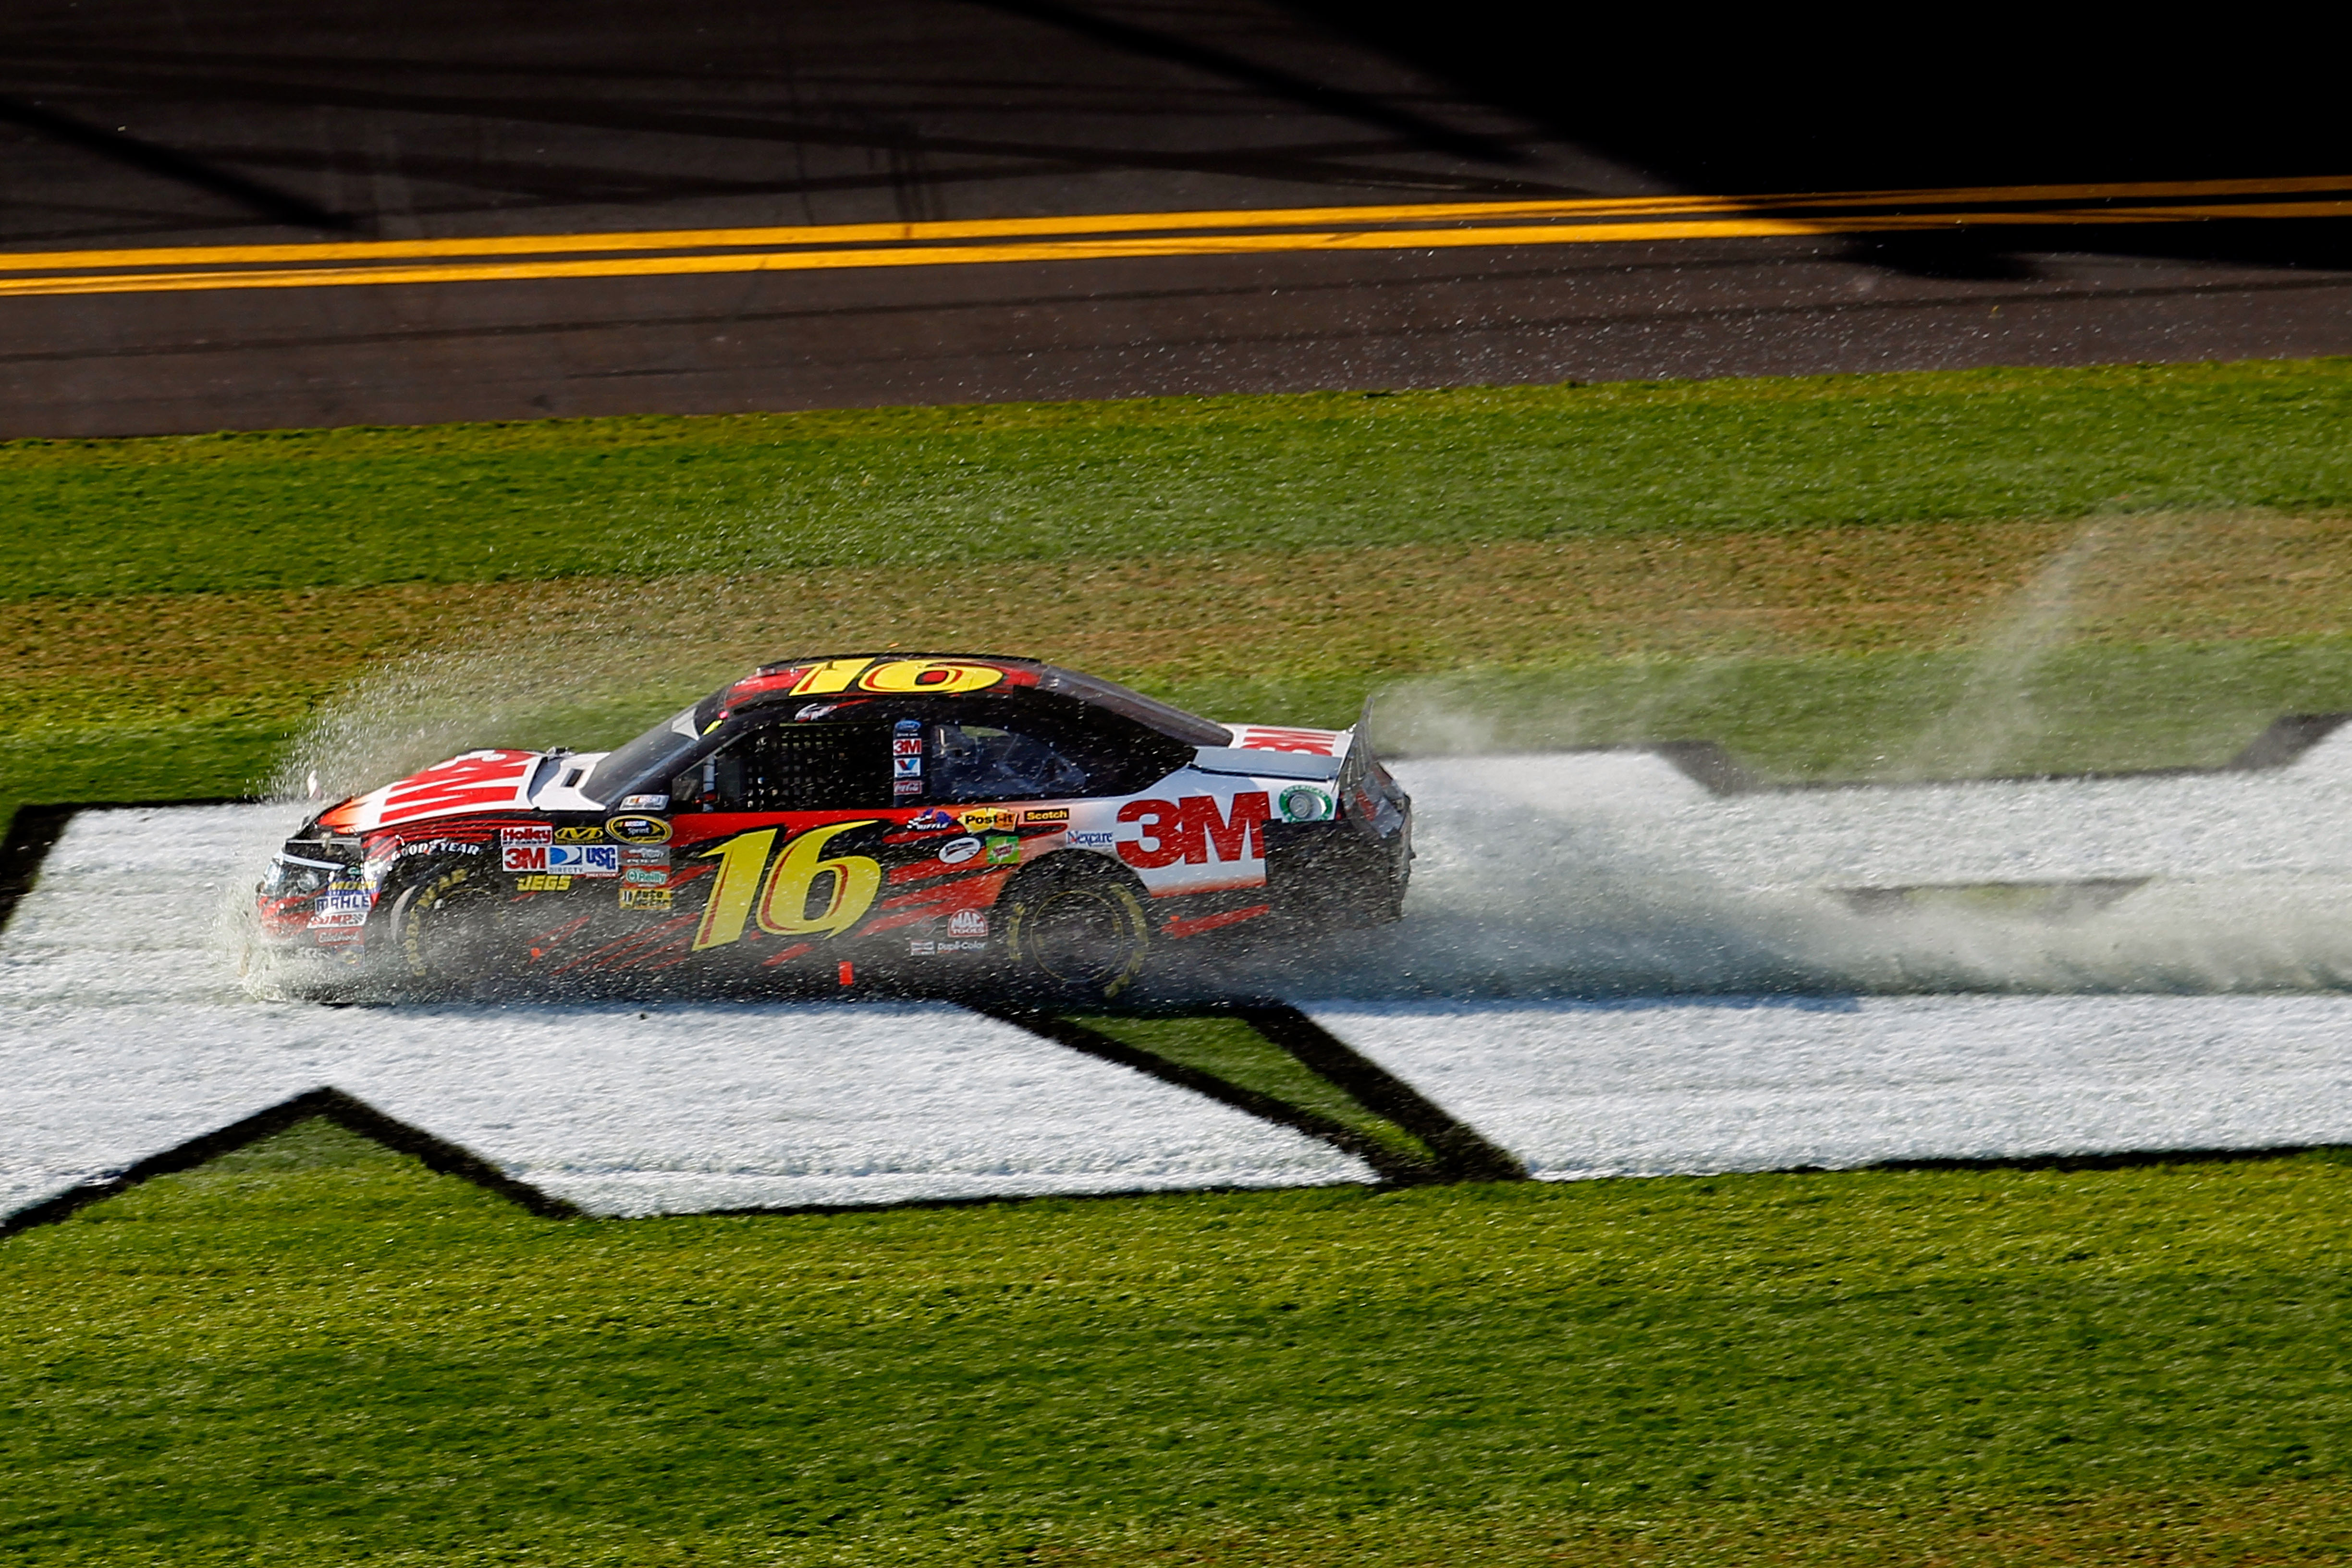 DAYTONA BEACH, FL - FEBRUARY 20:  Greg Biffle, driver of the #16 3M Ford, is involved in an incident during the NASCAR Sprint Cup Series Daytona 500 at Daytona International Speedway on February 20, 2011 in Daytona Beach, Florida.  (Photo by Todd Warshaw/